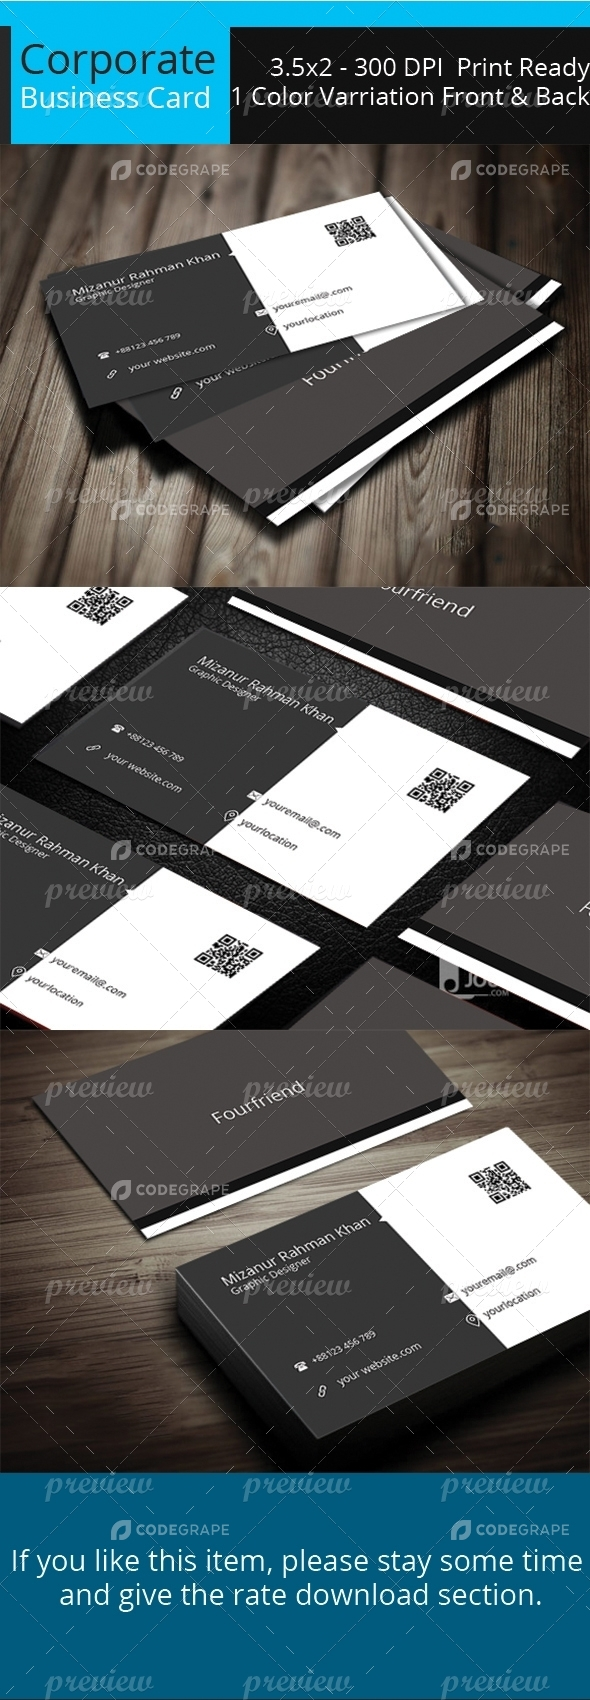 Corporate Business Card Vol 05